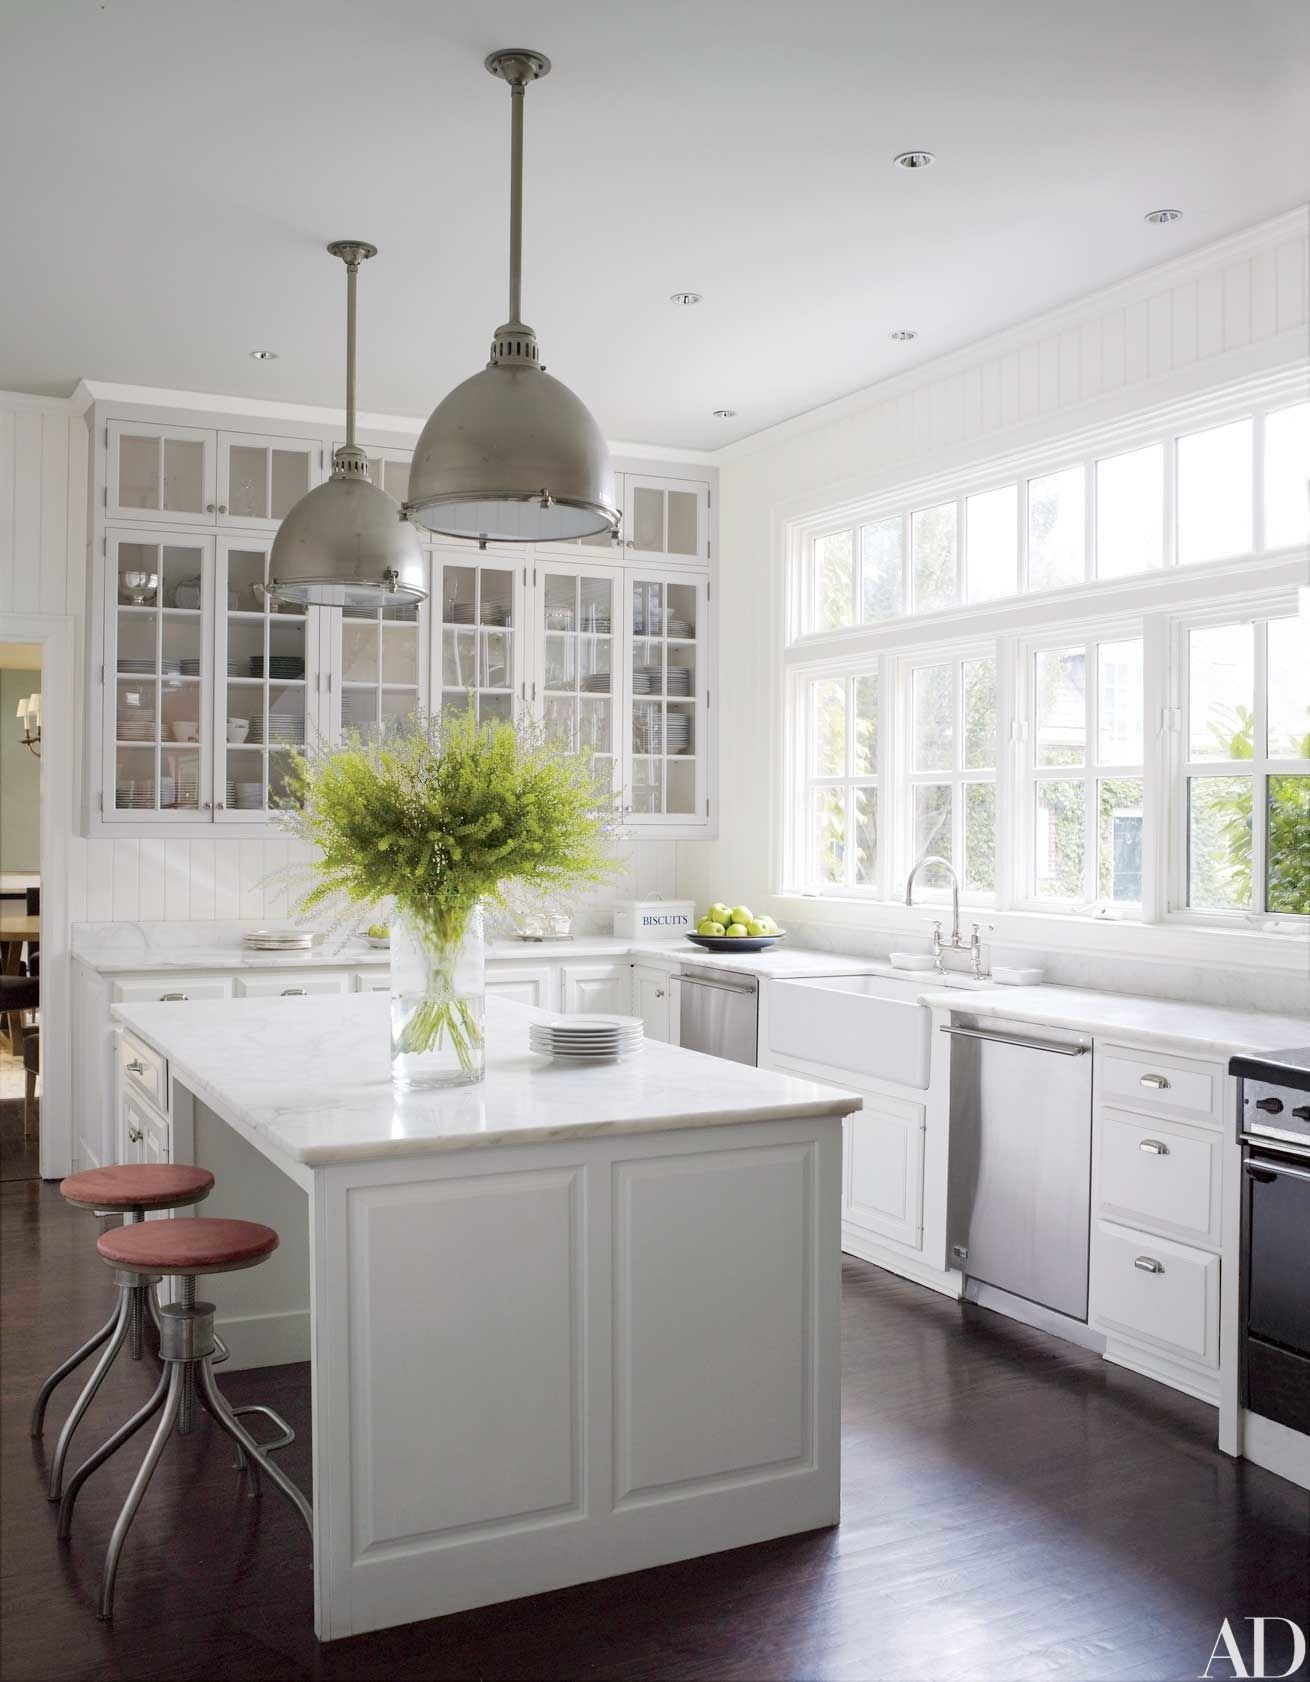 17 Kitchens with Classic Marble Countertops | Victoria hagan ...